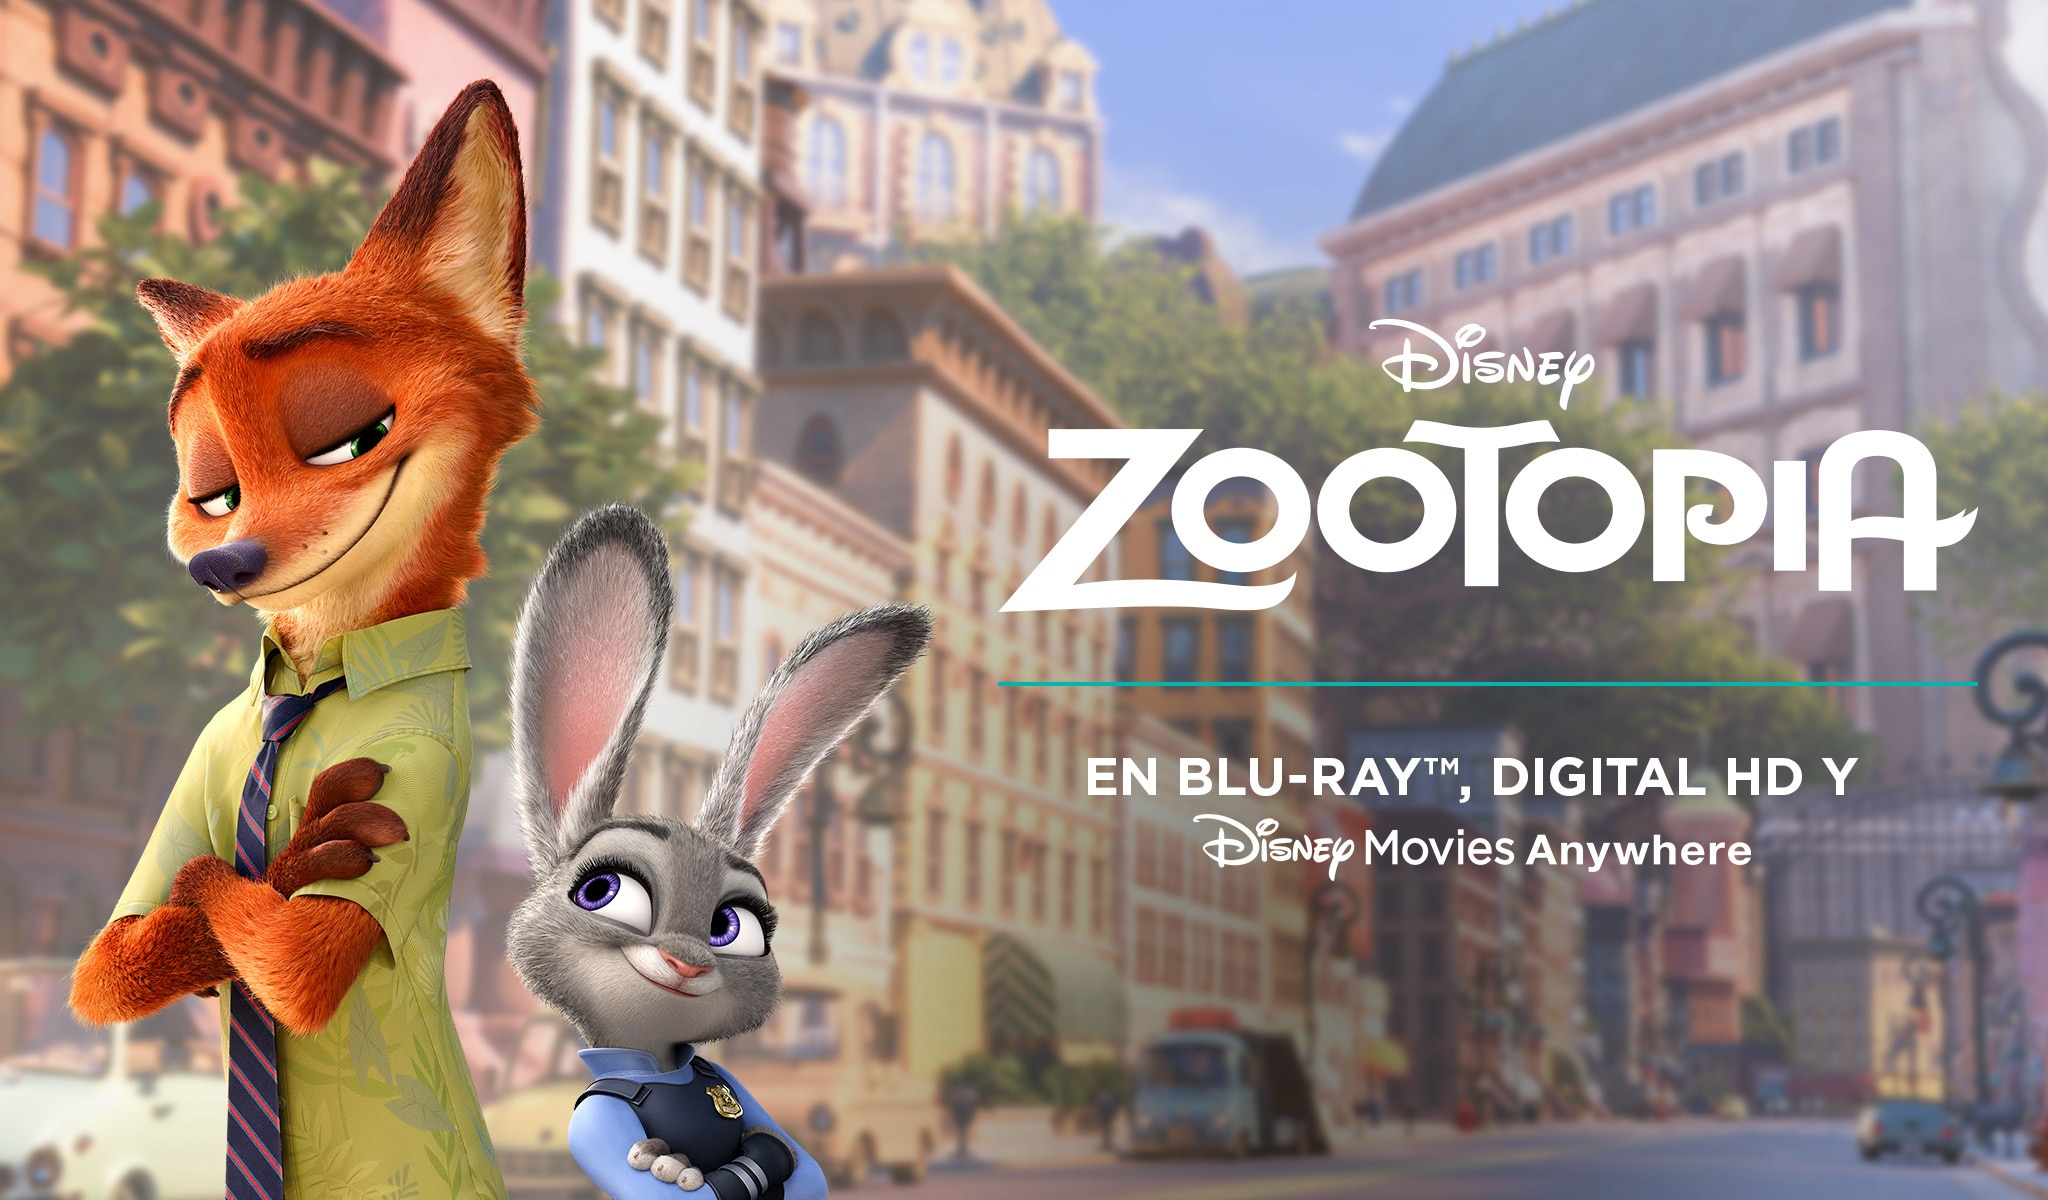 Zootopia En Blu-ray™, Digital HD y Disney Movies Anywhere el 7 de junio